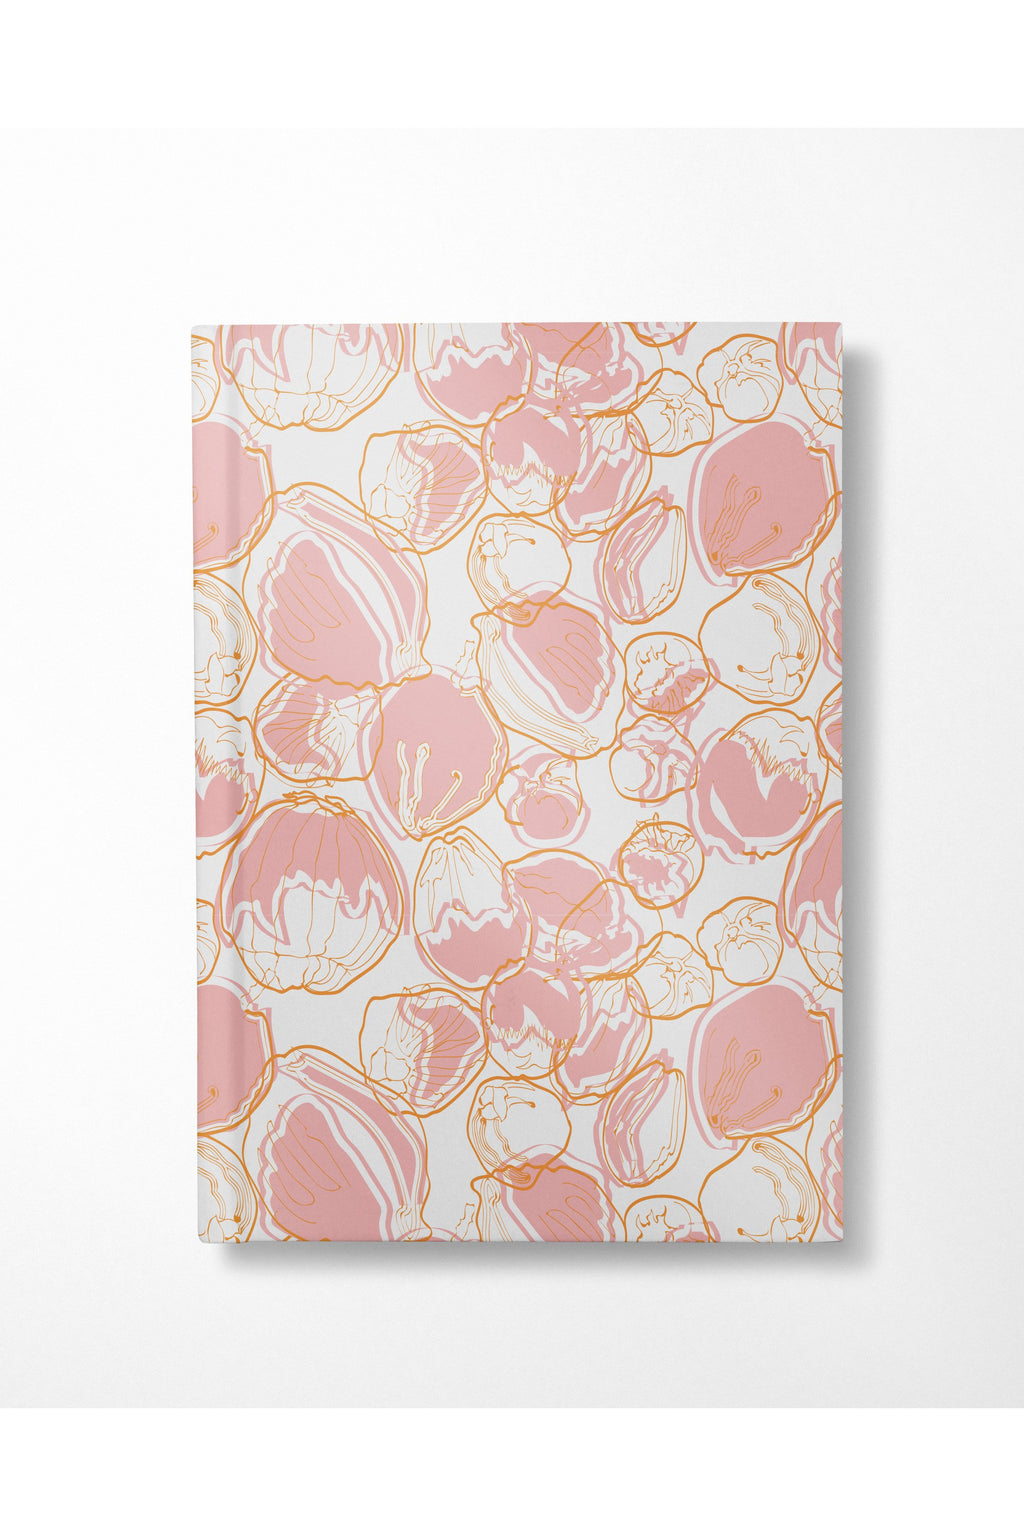 Coco Loco Notebook - Pink - Hausofassembly